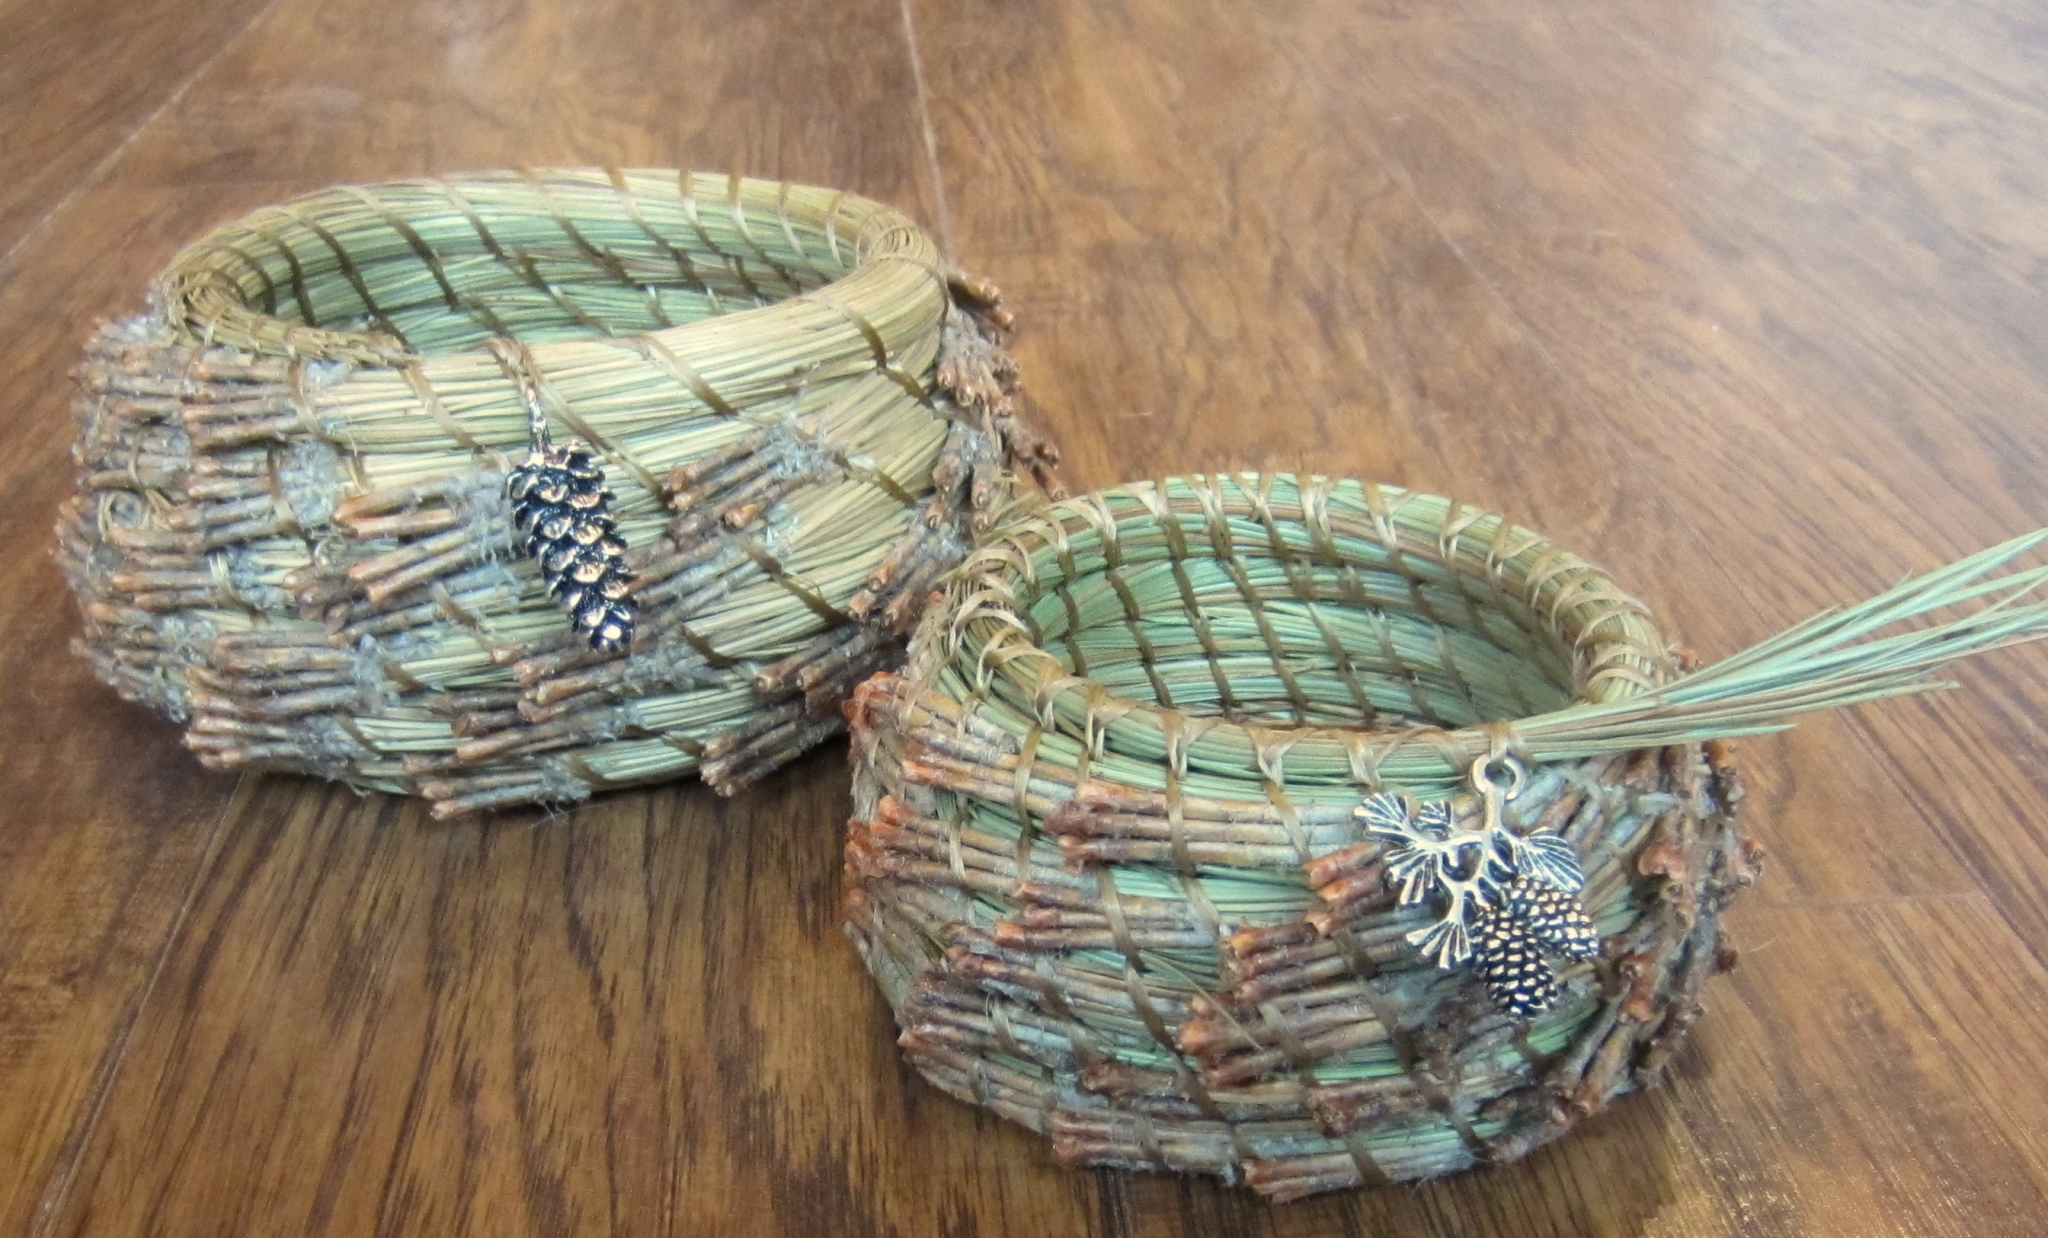 Whole Needle Pine Needle Basketry